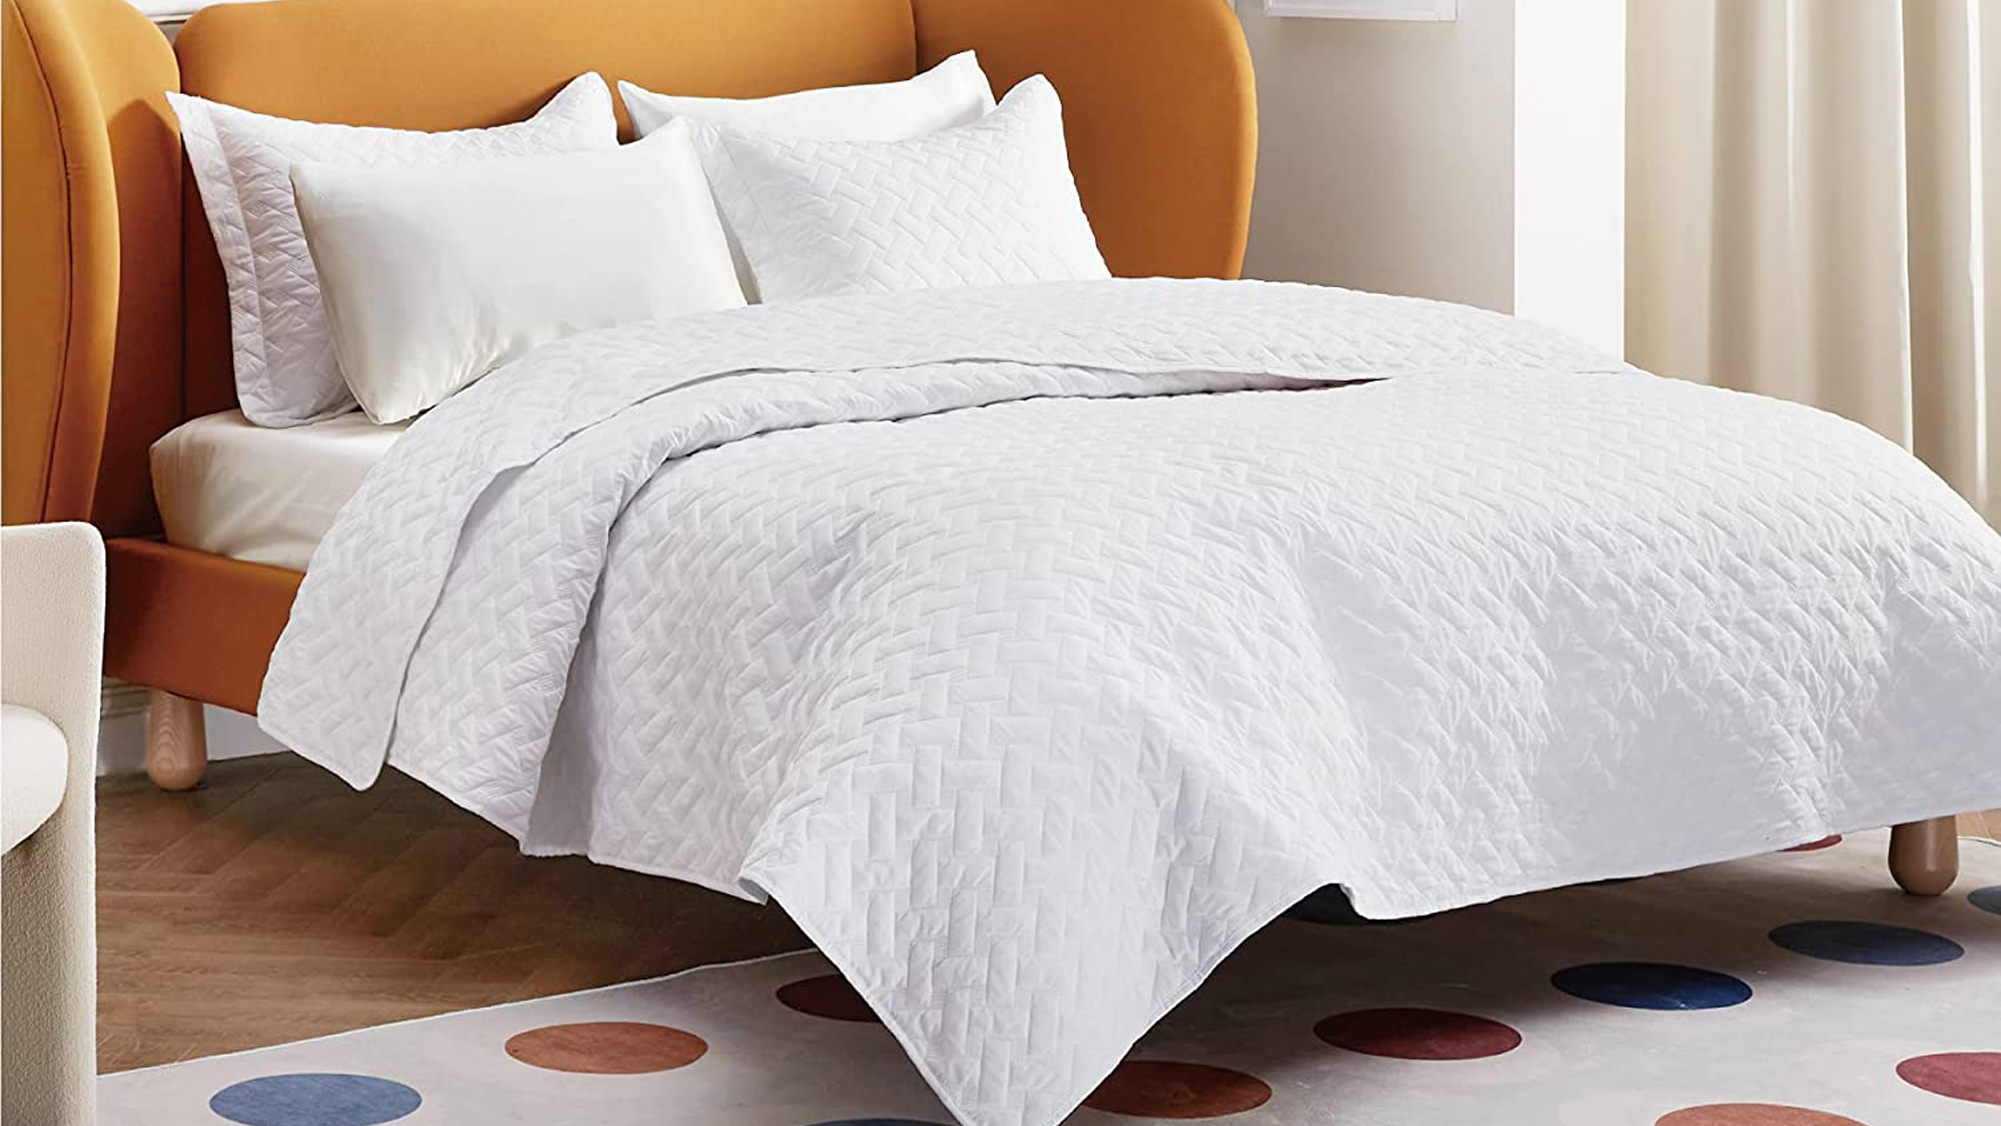 This Bedsure Quilted Bed Set Is Ideal for Summer and Fall Weather | Real  Simple